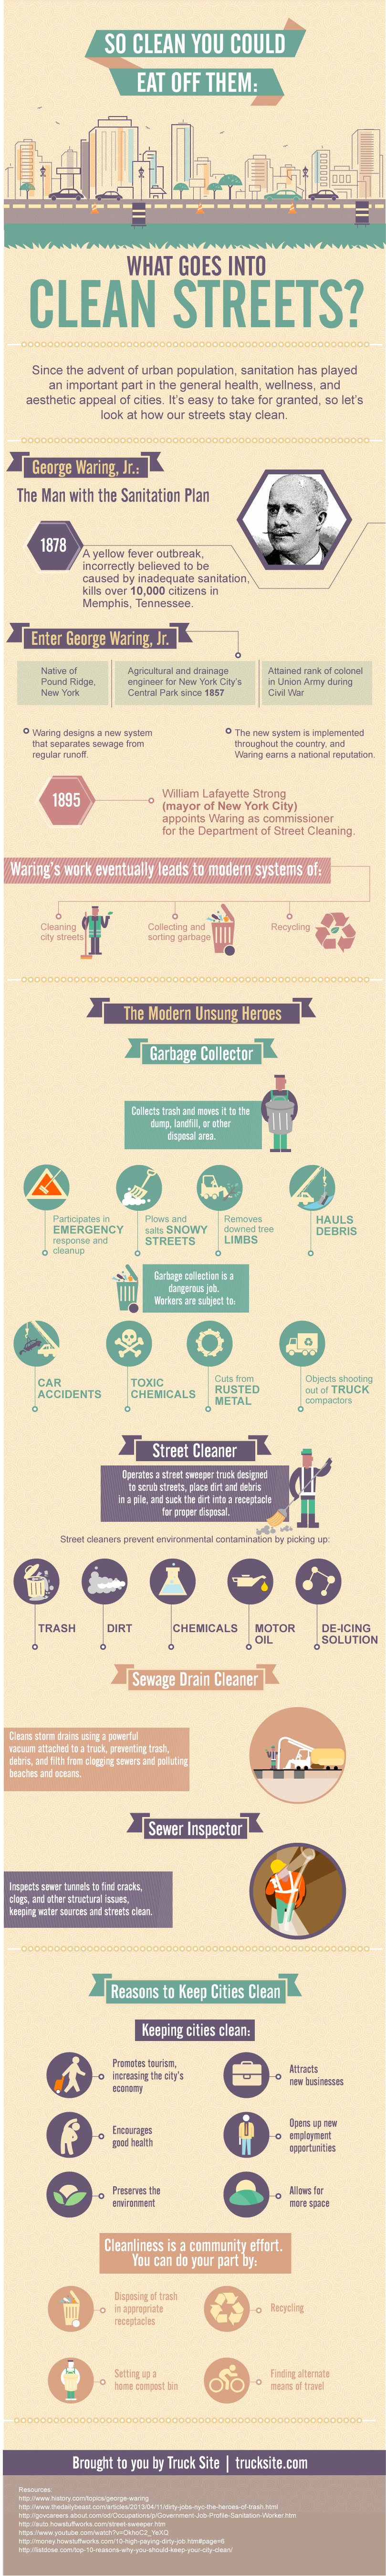 What Goes Into Clean Streets